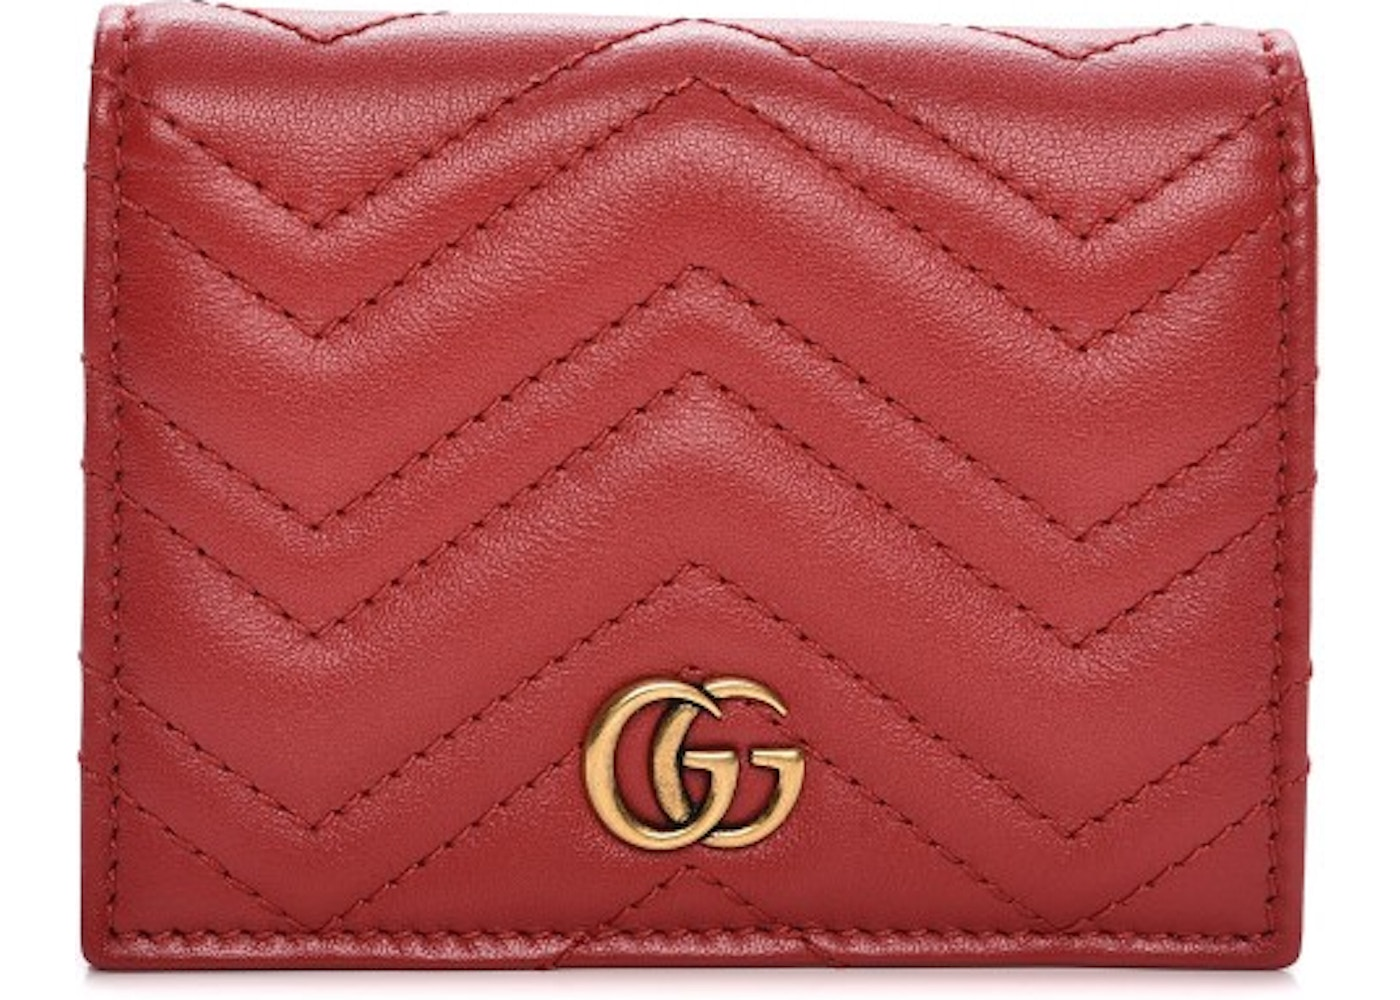 8a852f9f07e1a Gucci Card Case Marmont Matelasse GG Chevron Quilted Hibiscus Red. Matelasse  GG Chevron Quilted Hibiscus Red